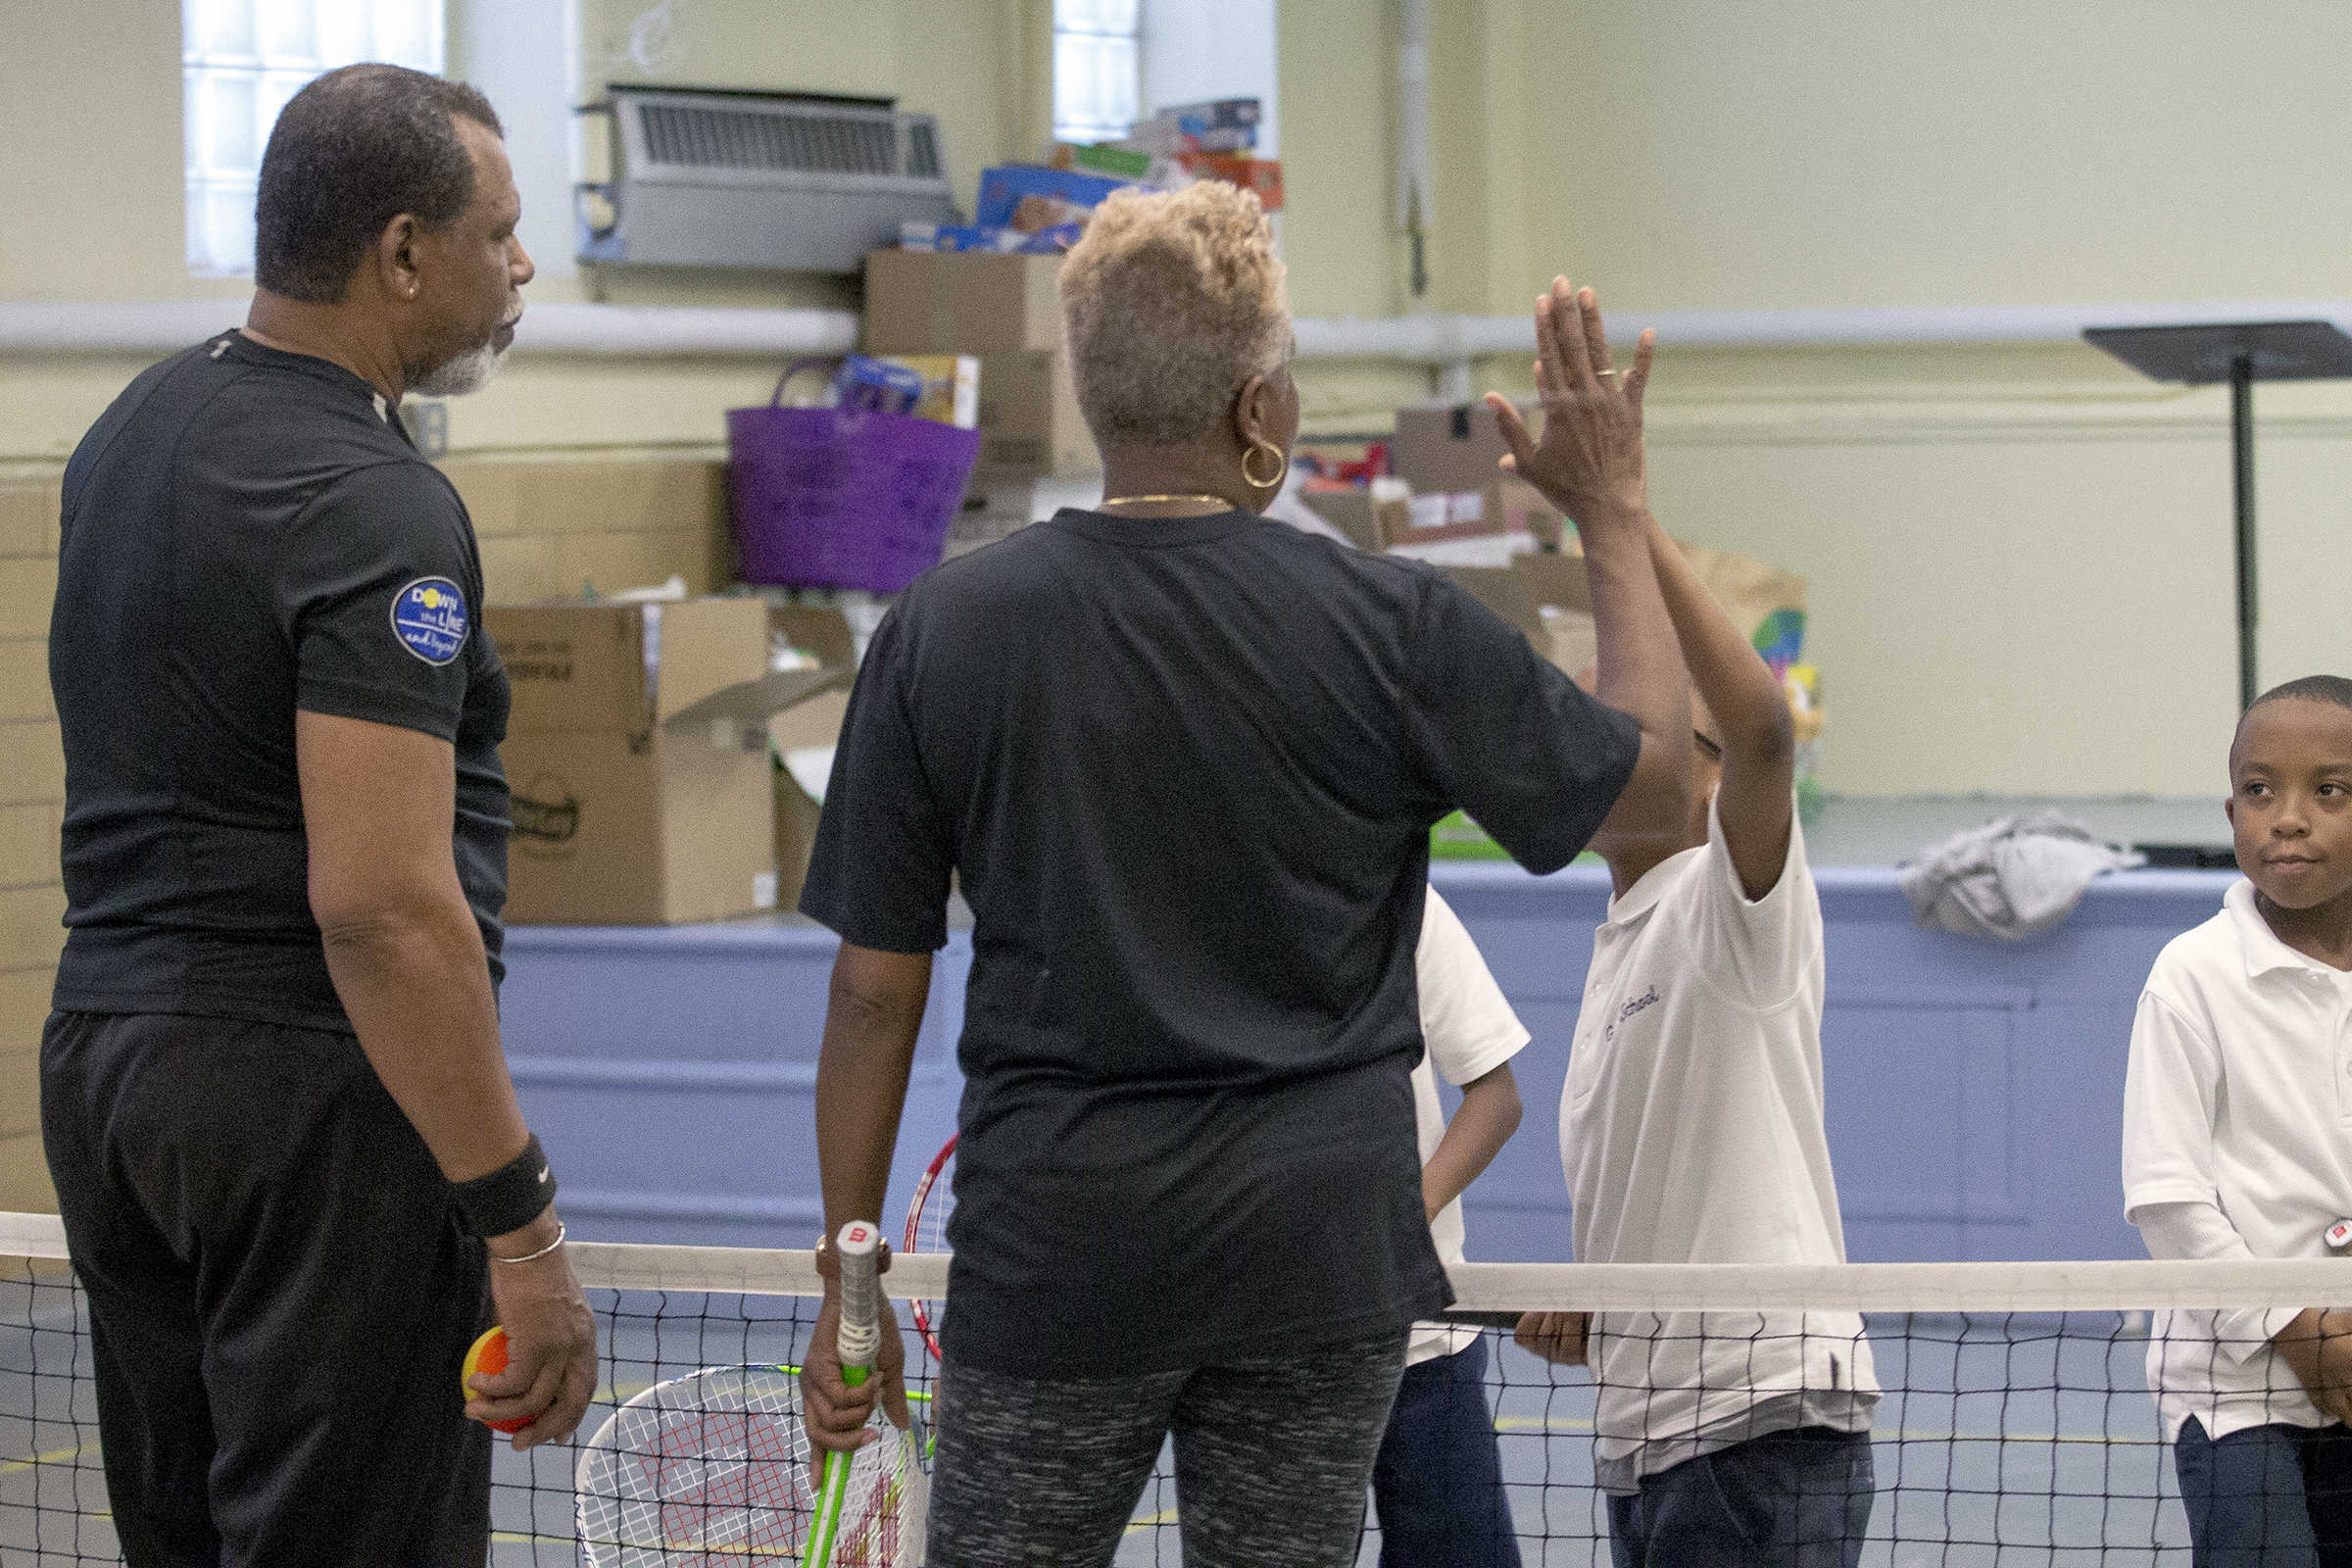 Retirees Kiwi Nicholson (left) and Cecelia Hodge (right) coaching kids in tennis on a Down The Line and Beyond tennis clinic in the Gesu School at 1700 W. Thompson St. in Philadelphia, April 4, 2017.